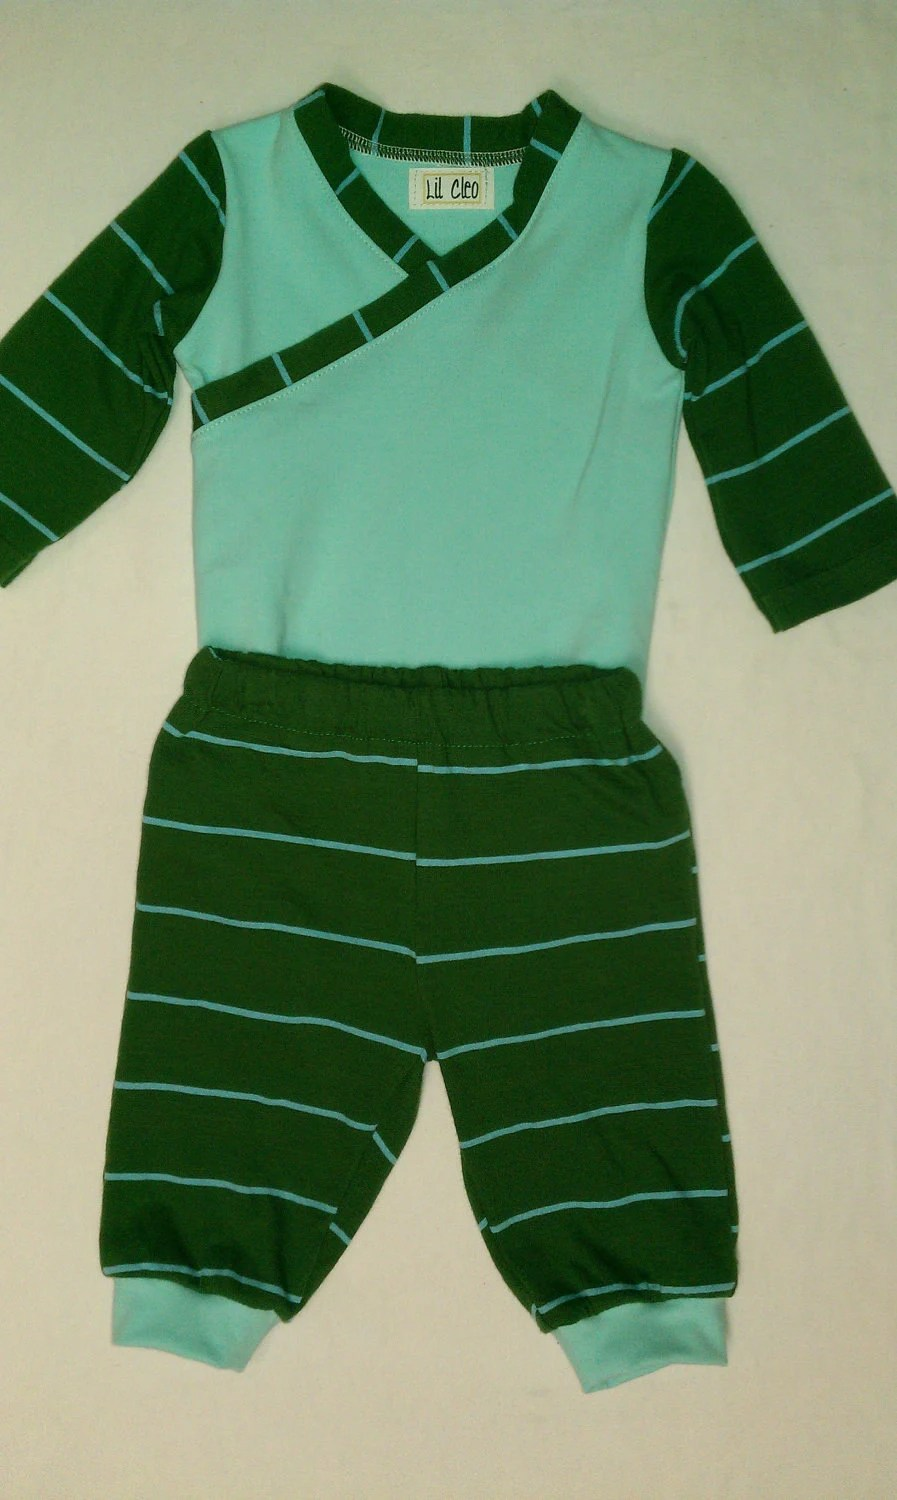 Boy OOAK upcycled bodysuit and pants green and blue striped 3 to 6 months